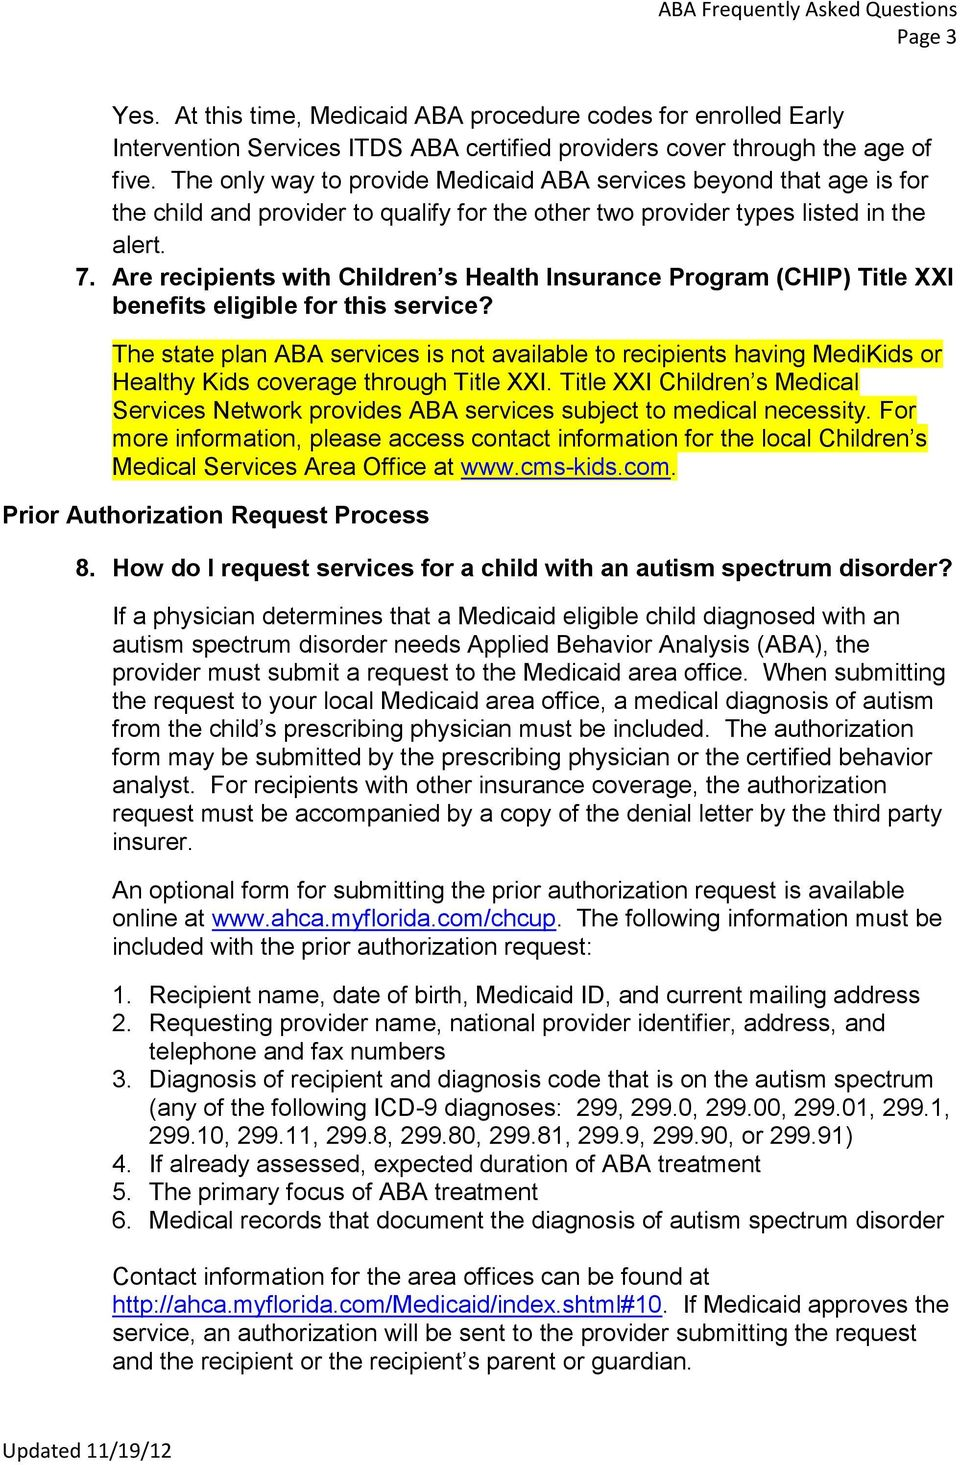 Are recipients with Children s Health Insurance Program (CHIP) Title XXI benefits eligible for this service?